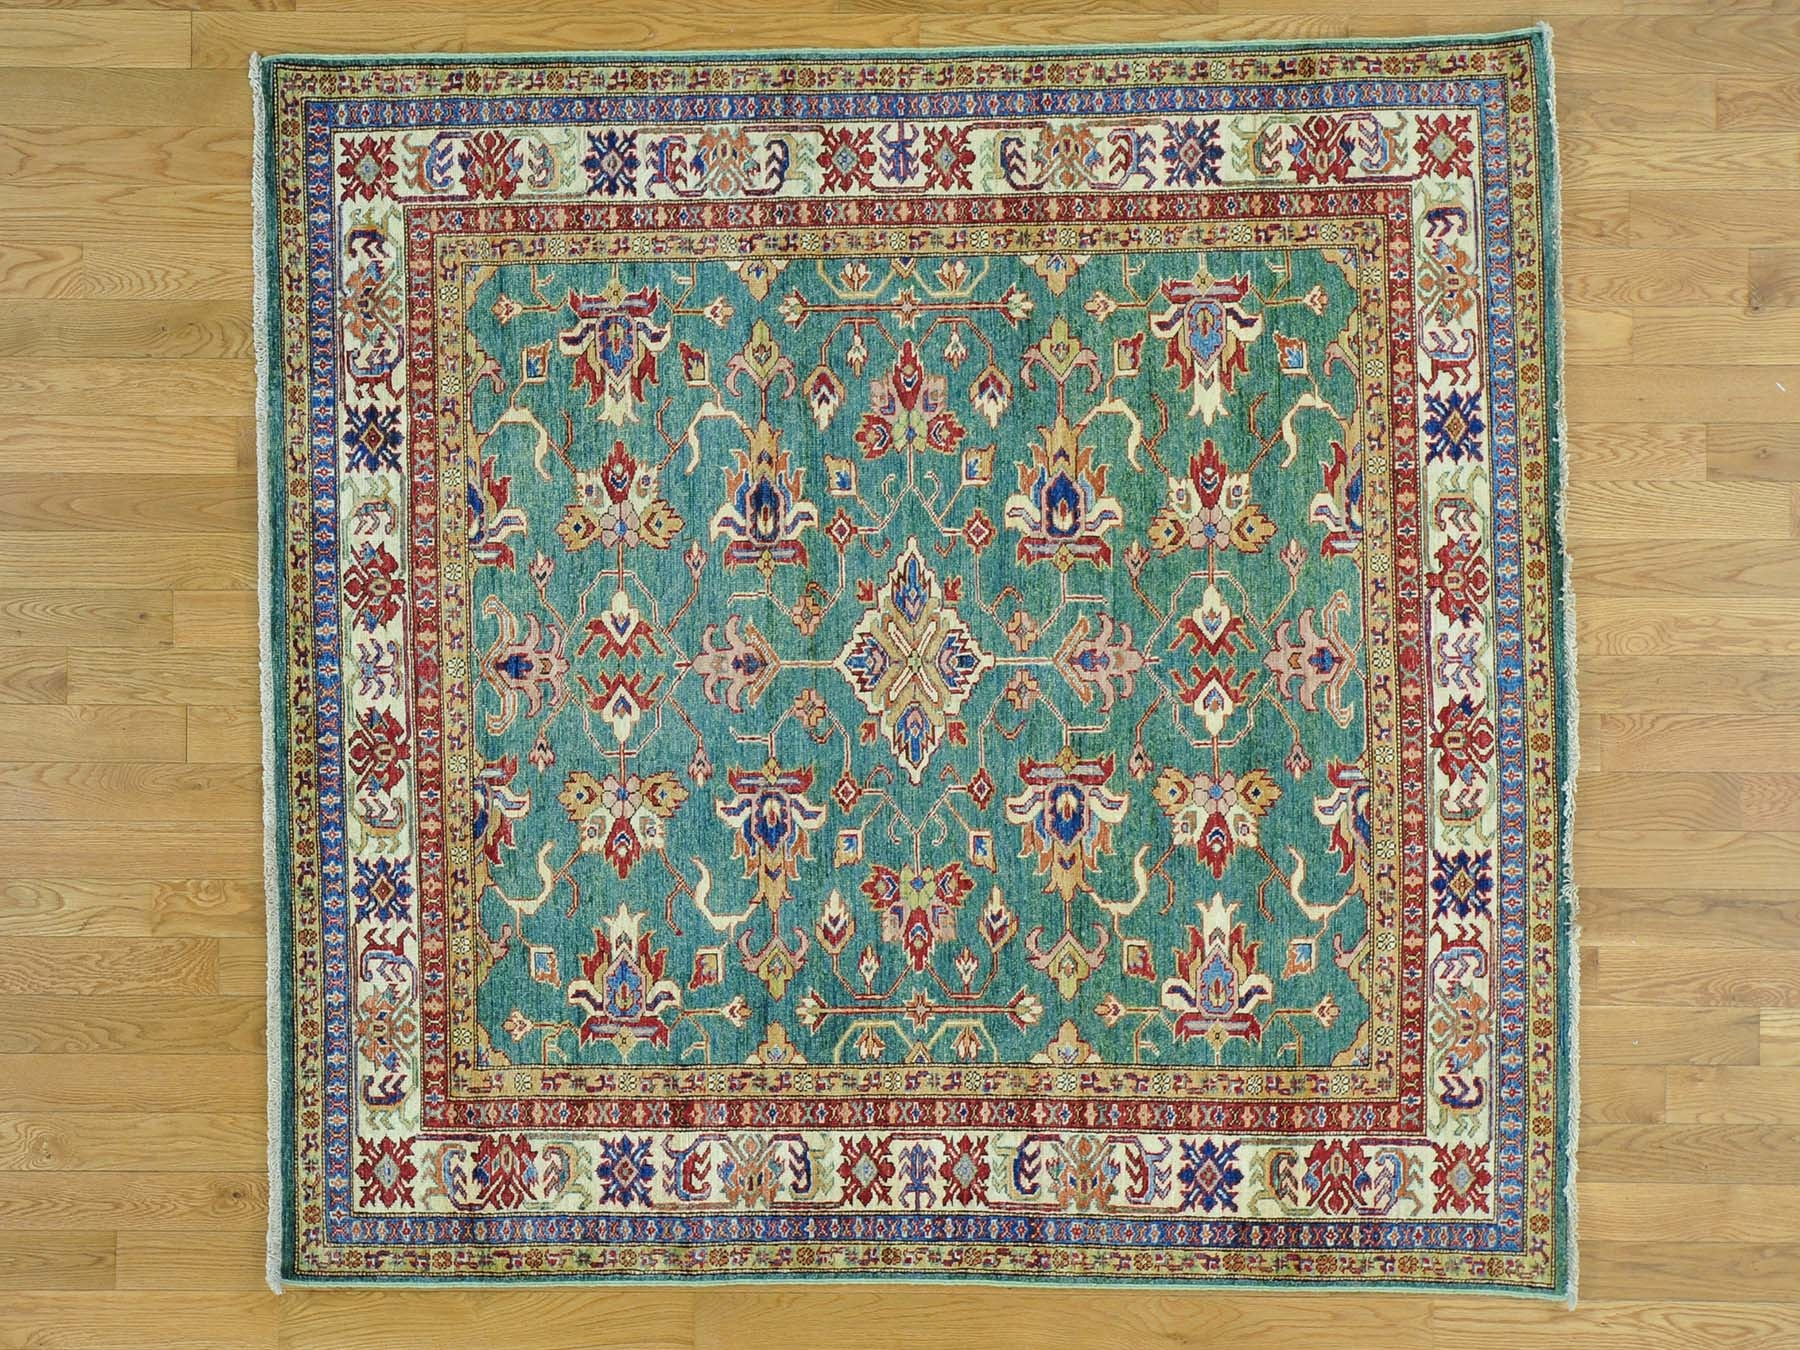 6 X 6 Light Green Pure Wool Square Super Kazak Geometric Design For Square Rugs 6× (Image 1 of 15)